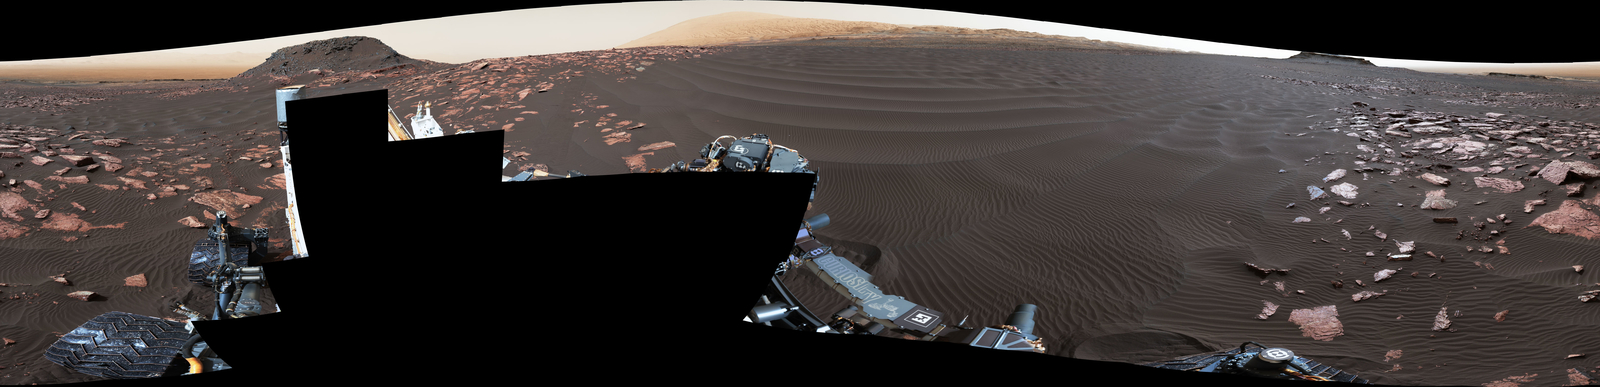 "A rippled linear dune of dark Martian sand, ""Nathan Bridges Dune,"" dominates this full-circle panorama from the Mastcam of NASA's Curiosity Mars rover. This dune was one research stop of the mission's campaign to investigate active Martian dunes. Nathan Bridges (1966-2017) helped lead that campaign"